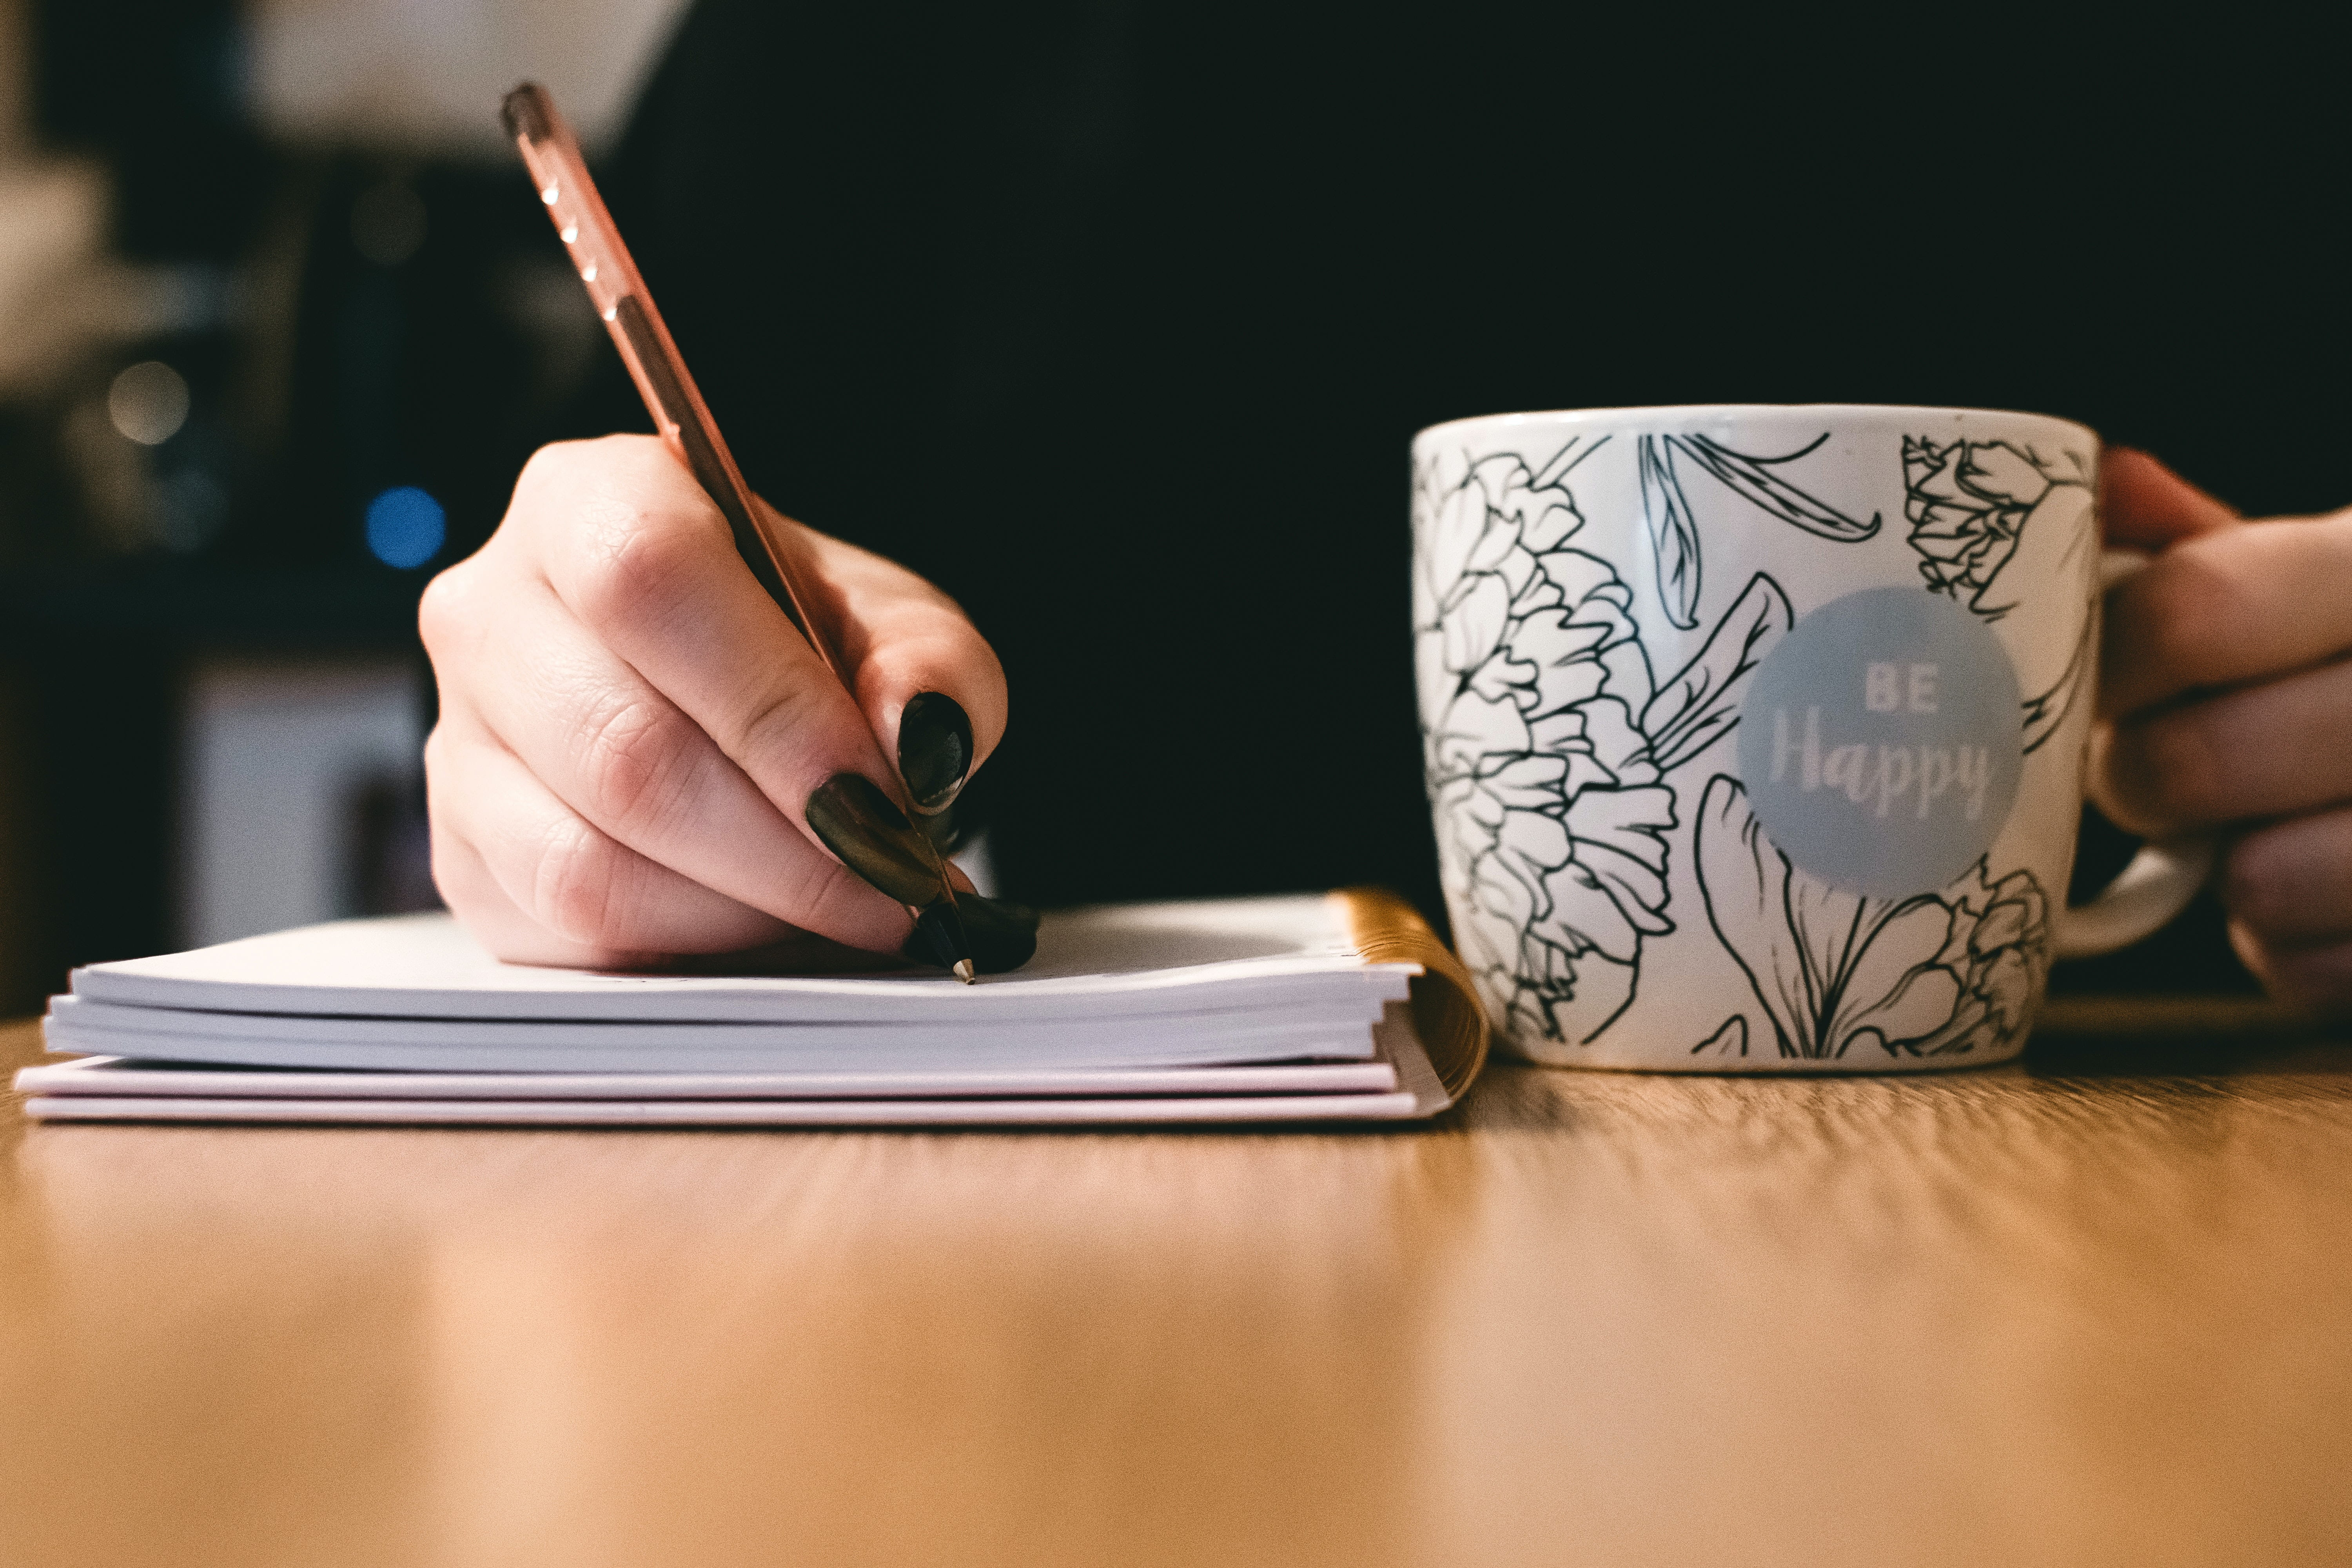 A hand writing in a notebook with a mug that says 'Be Happy' on it.